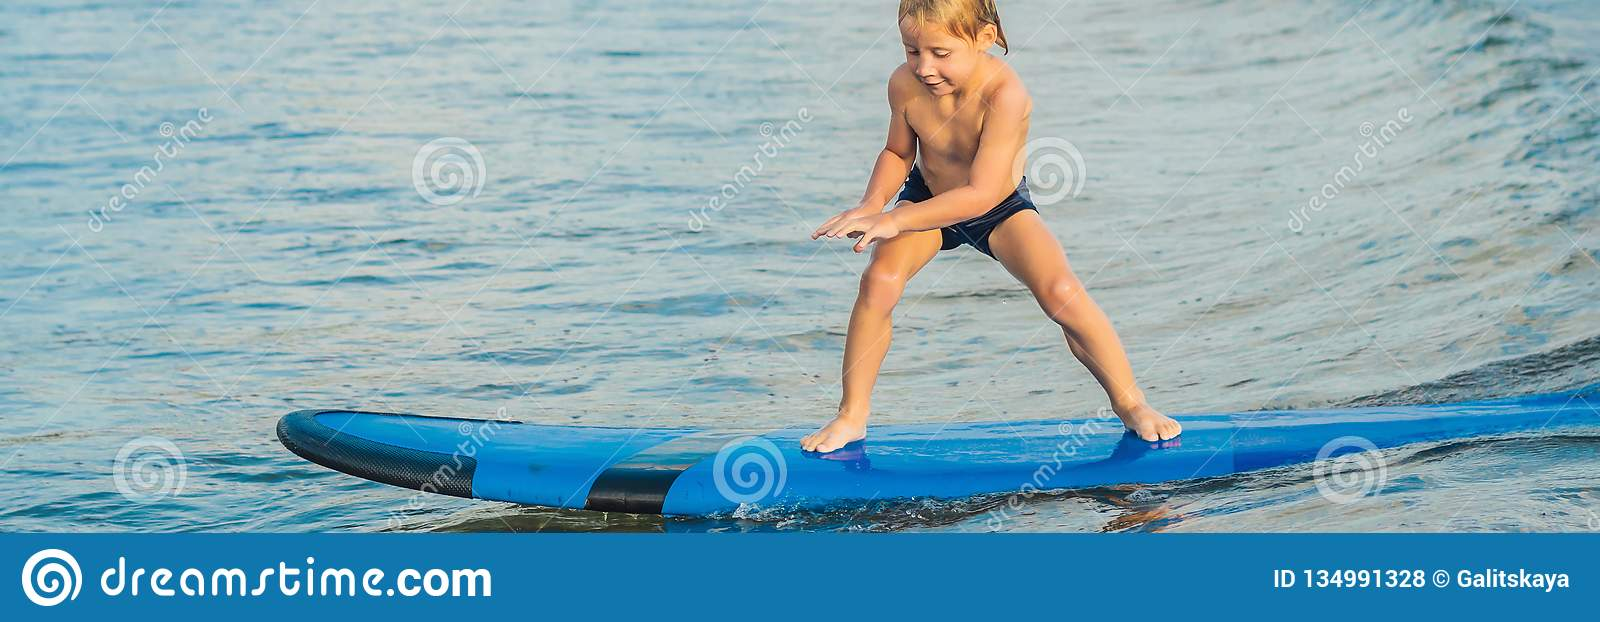 Little boy surfing on tropical beach. Child on surf board on ocean wave. Active water sports for kids. Kid swimming with